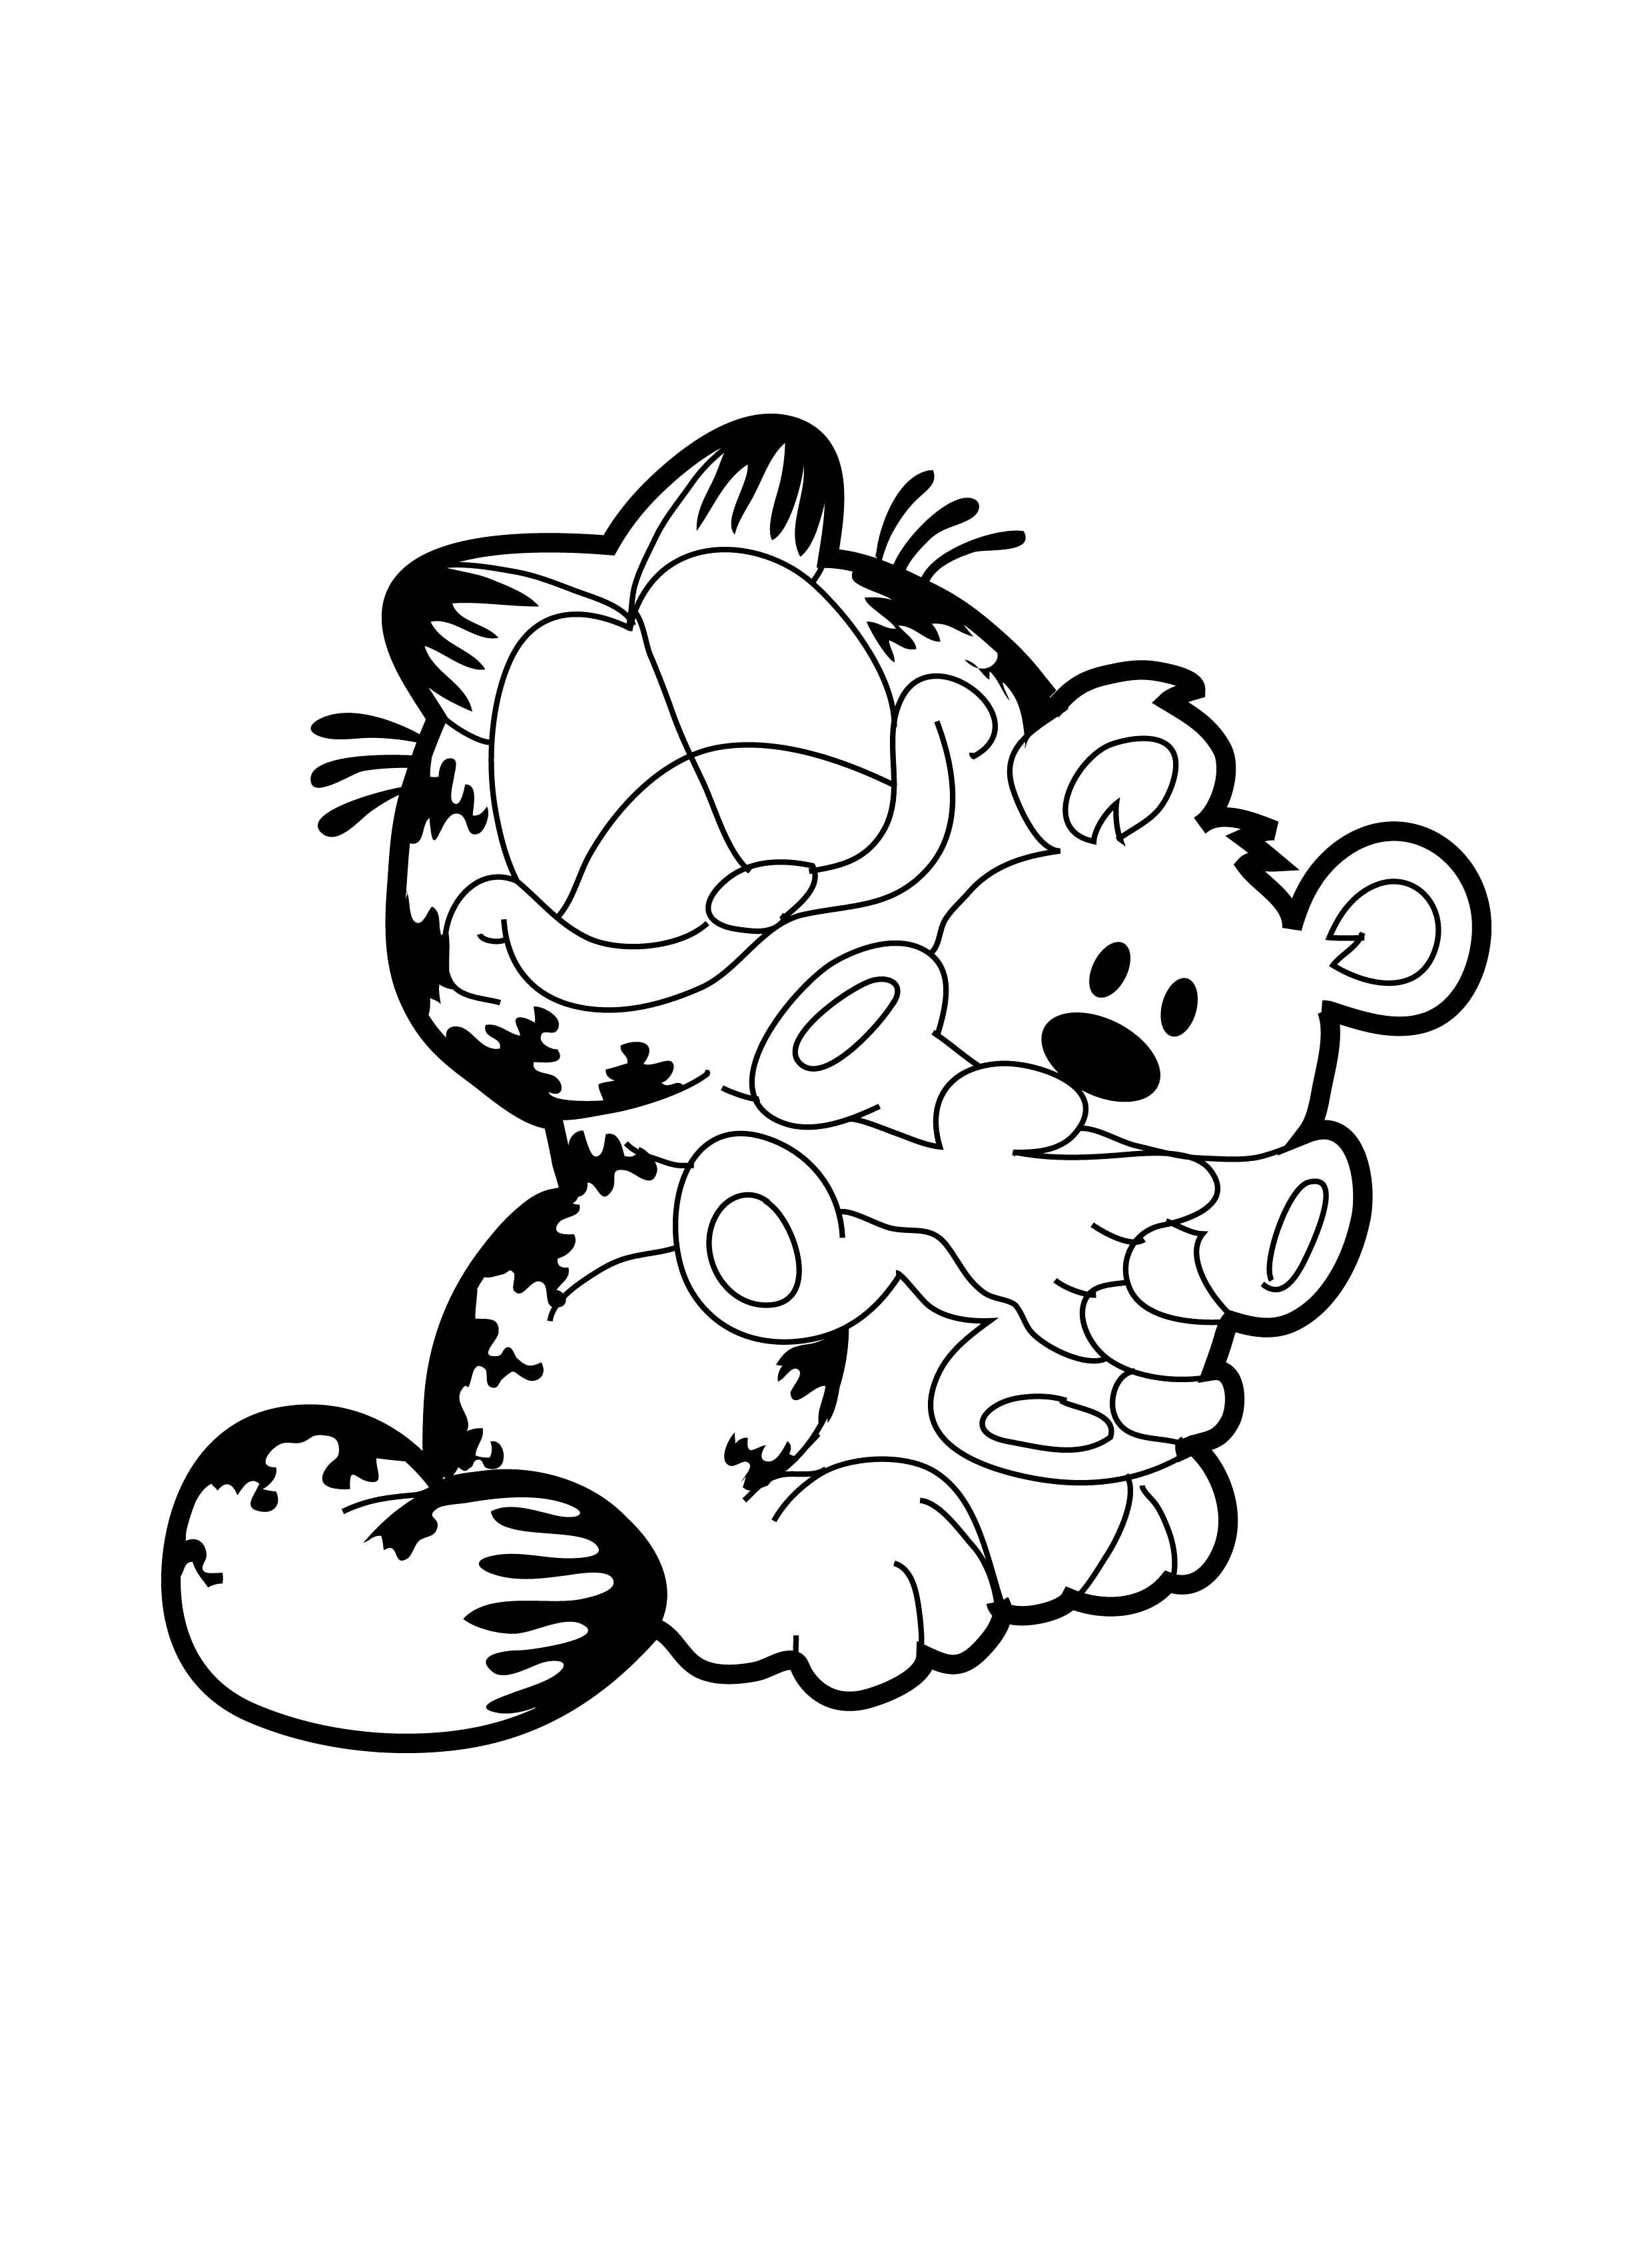 Garfield Very Like Doll Coloring Page